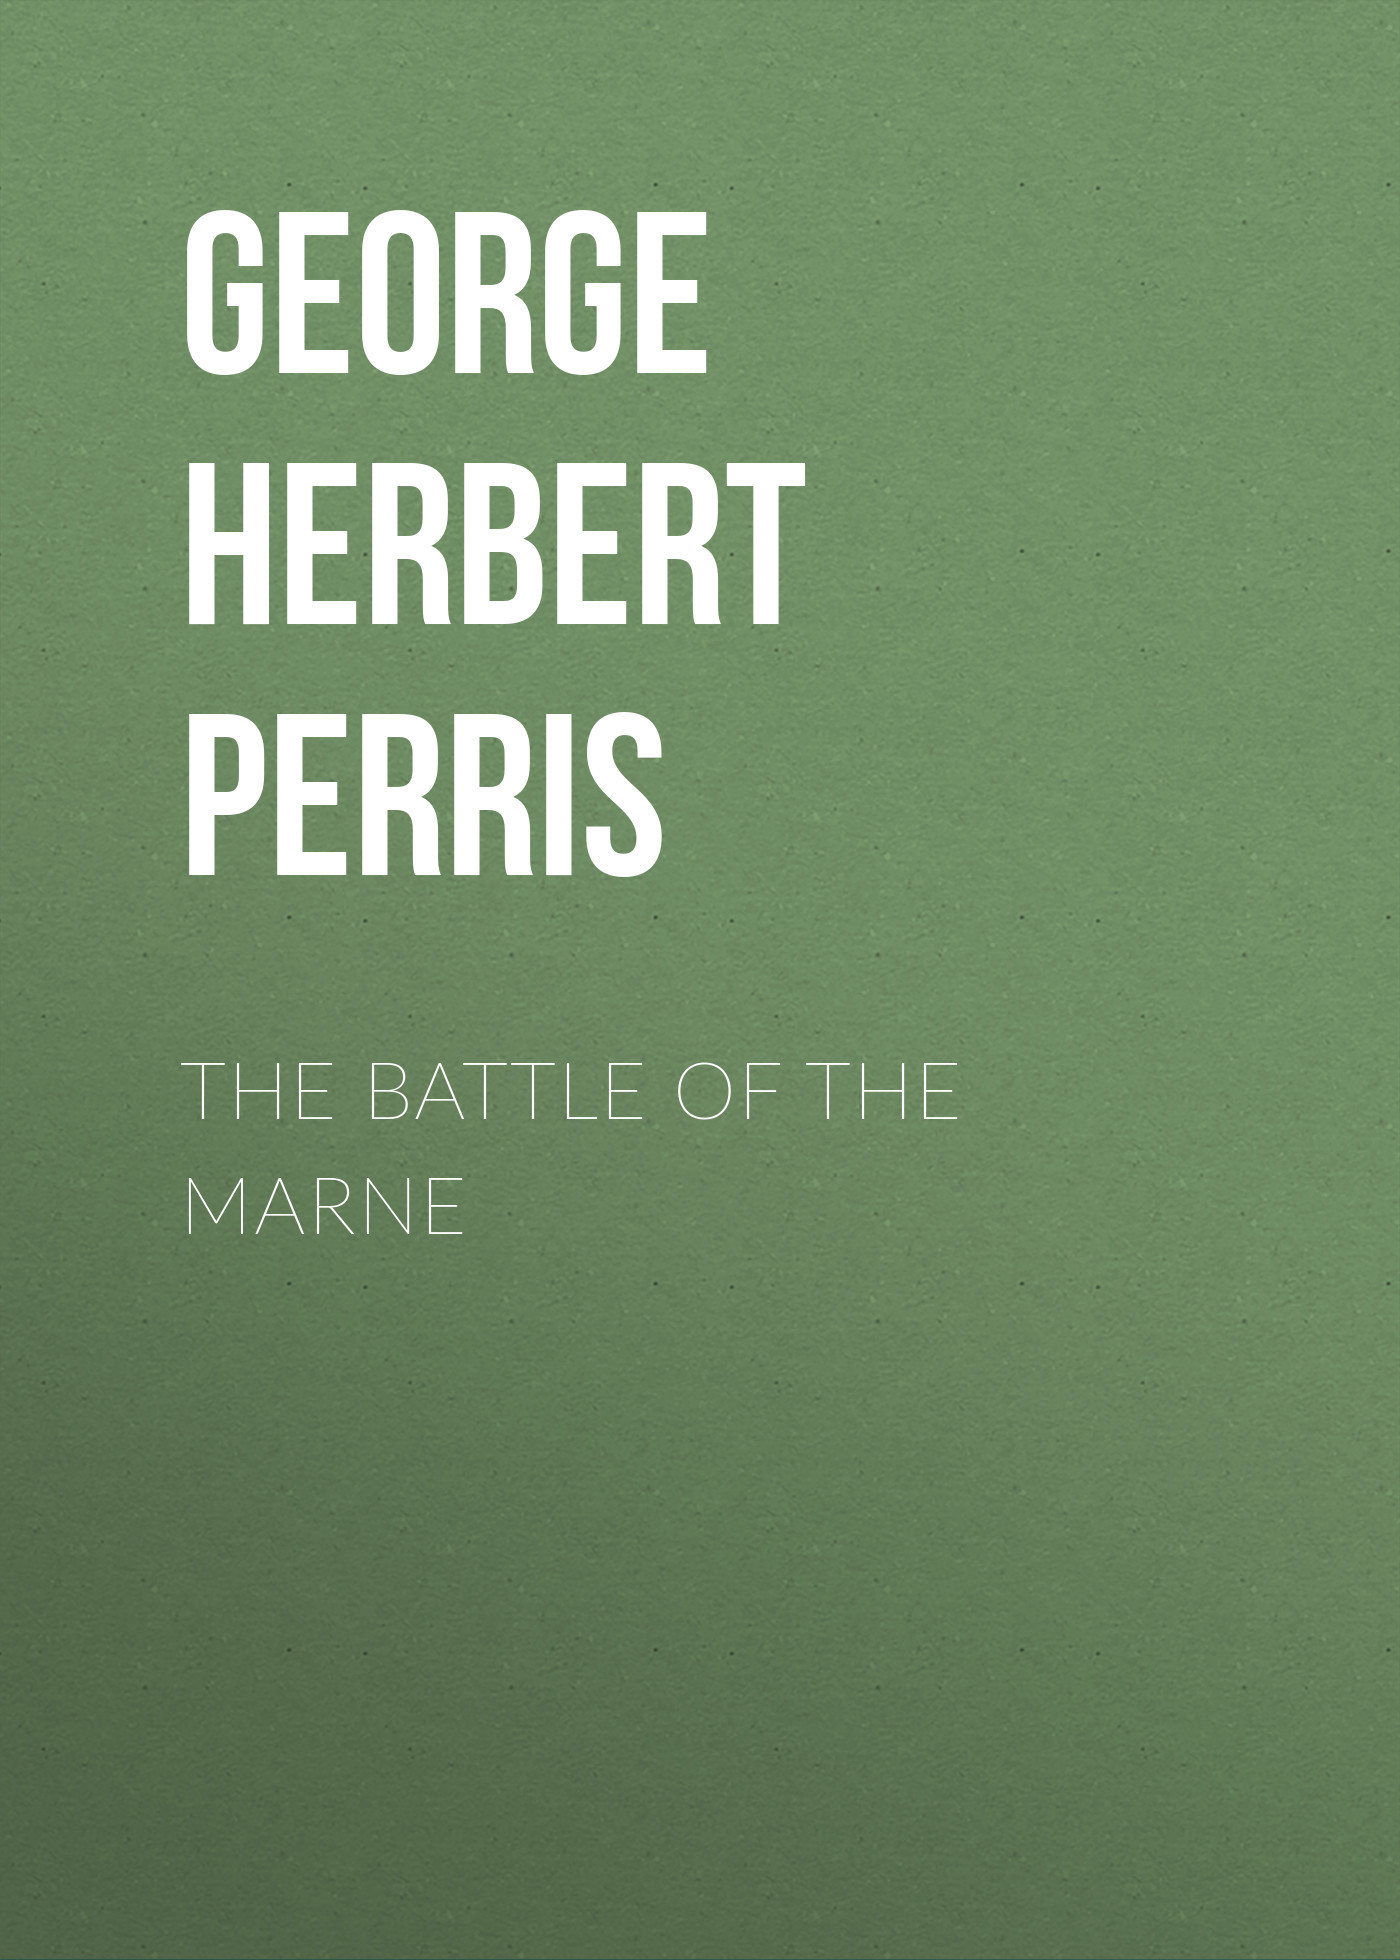 George Herbert Perris The Battle of the Marne wells herbert george the war of the worlds